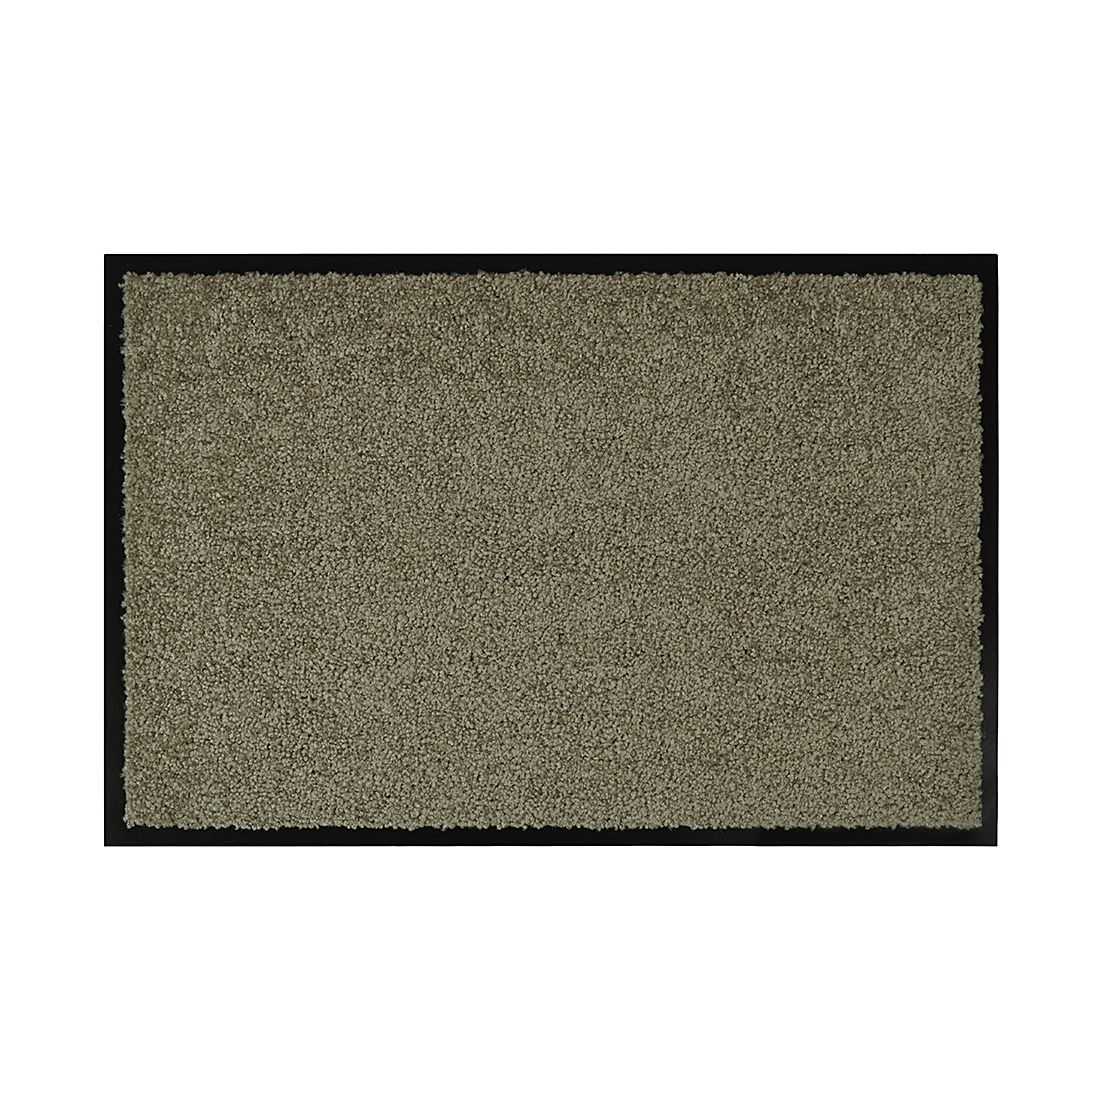 Deurmat Wash en Clean - Duifgrijs - 40x60cm, Hanse Home Collection